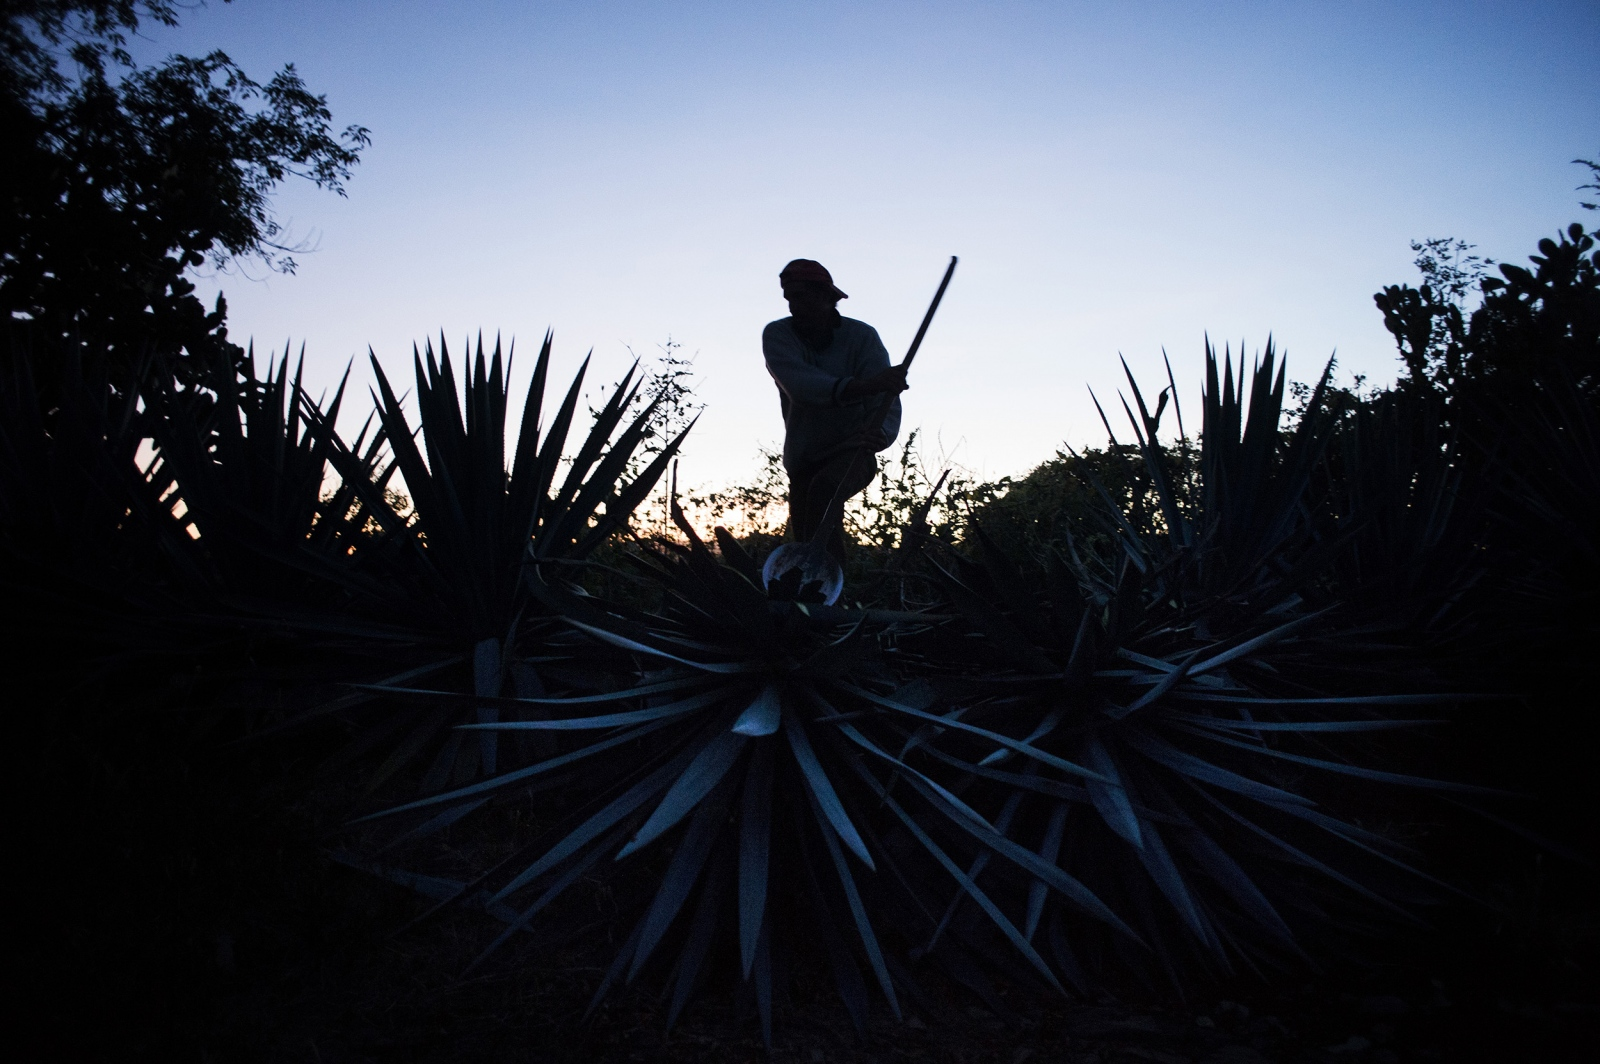 A jimador uses traditional hand tools to harvest an agave in the fields, before the sun rises.